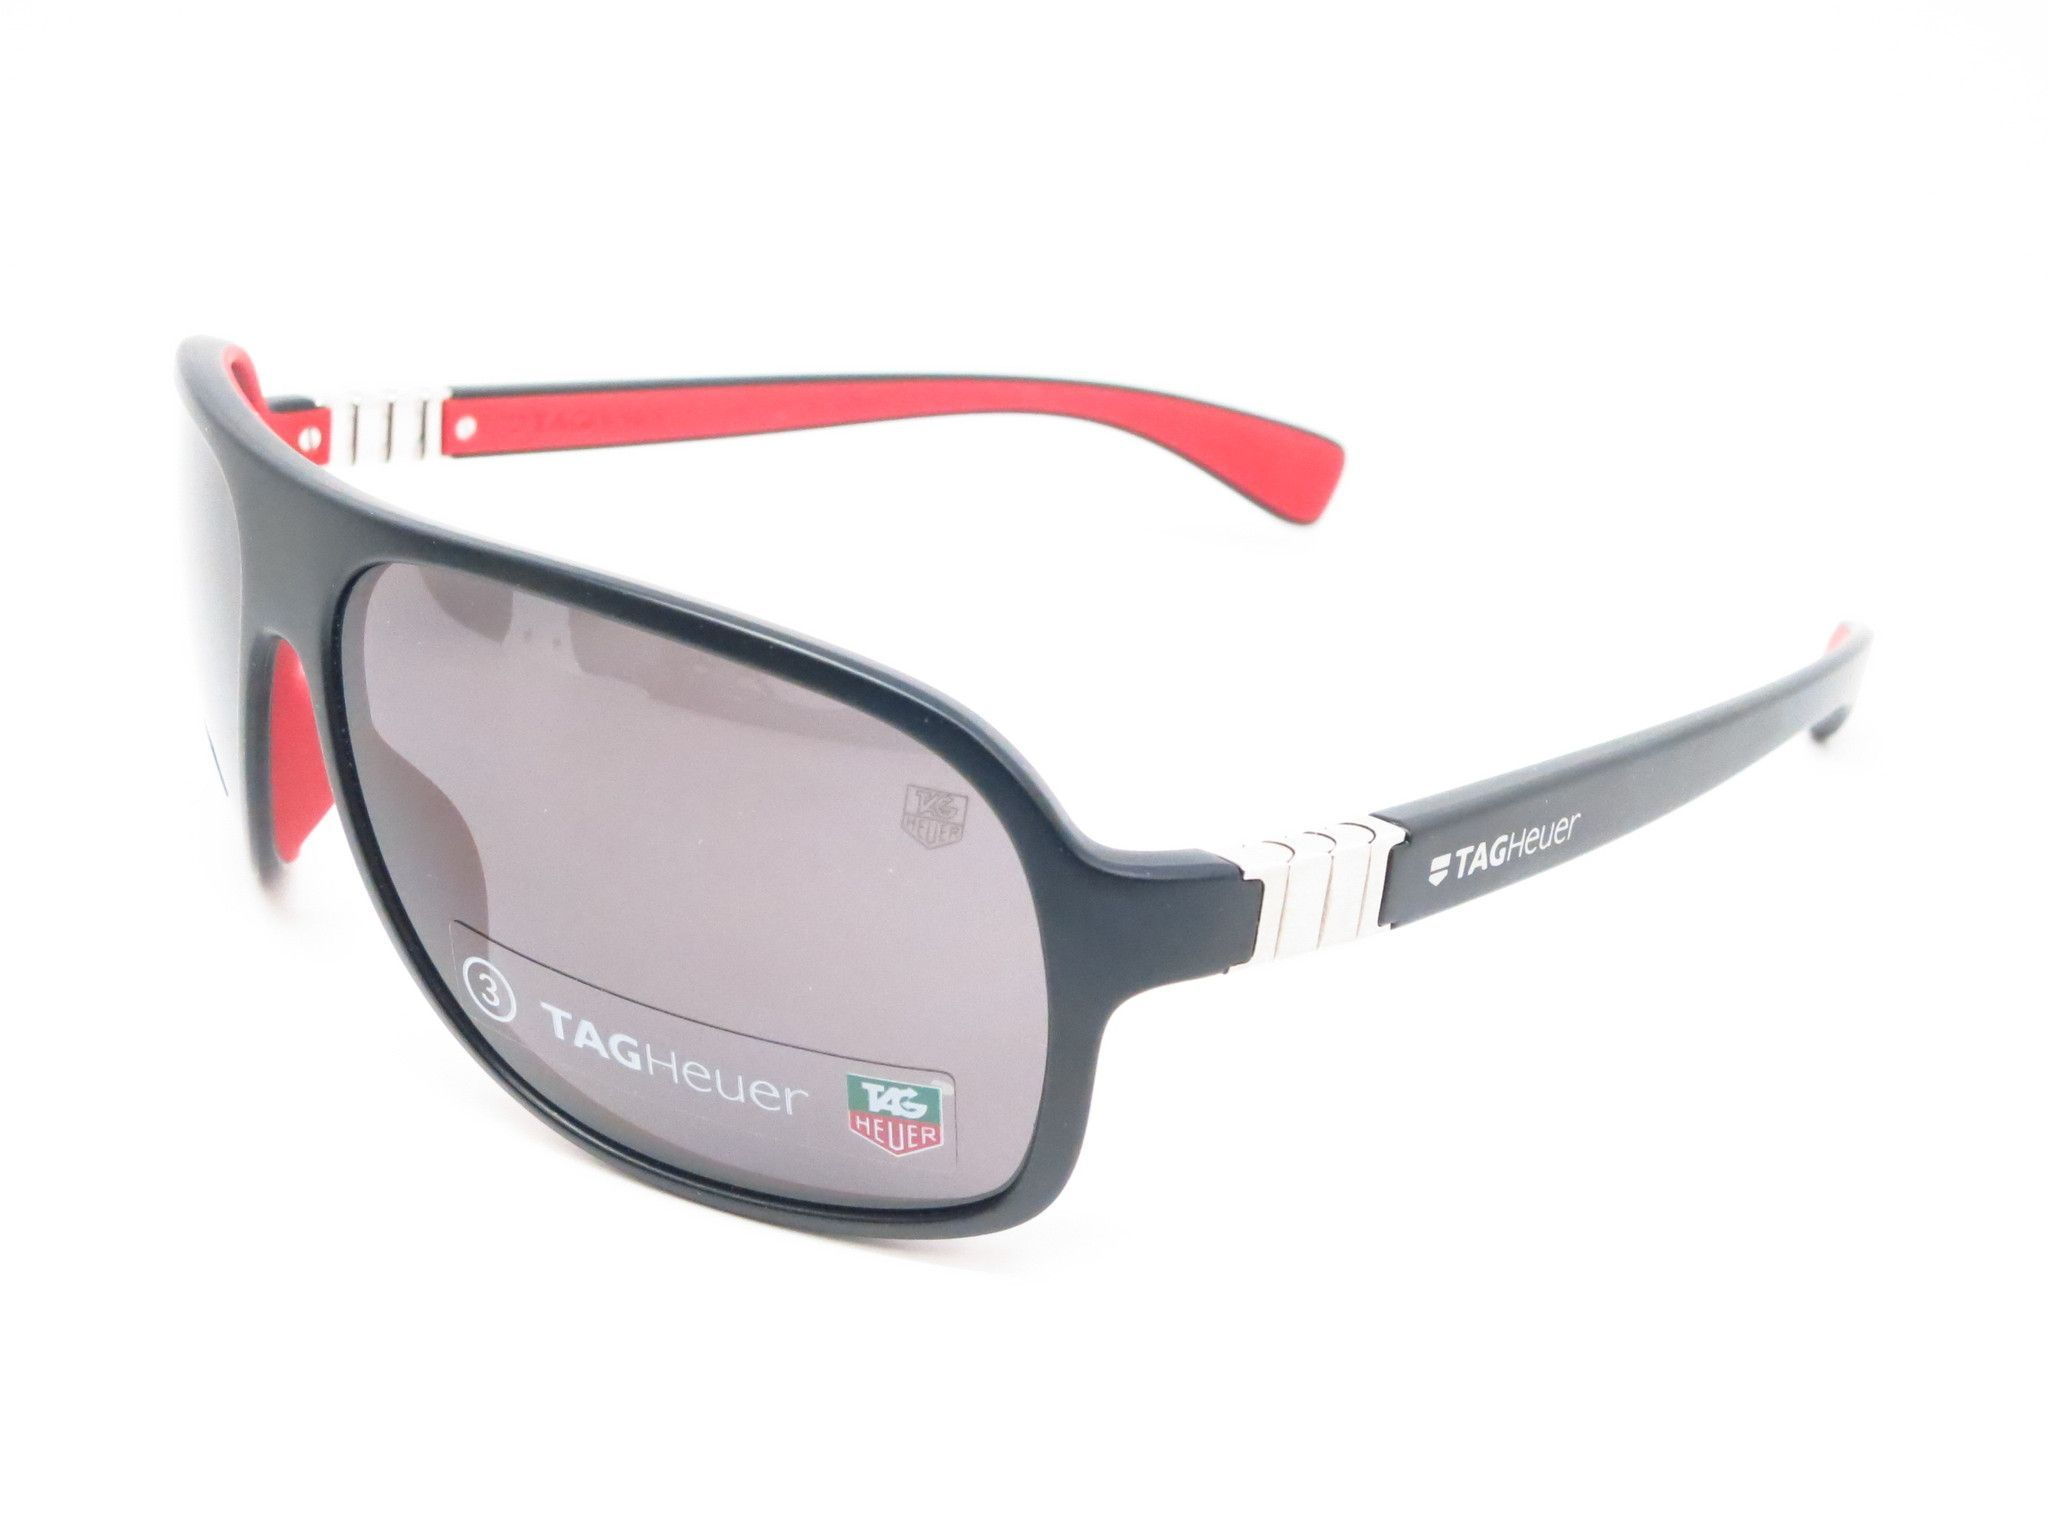 Features of the tag heuer th 9303 sunglasses large